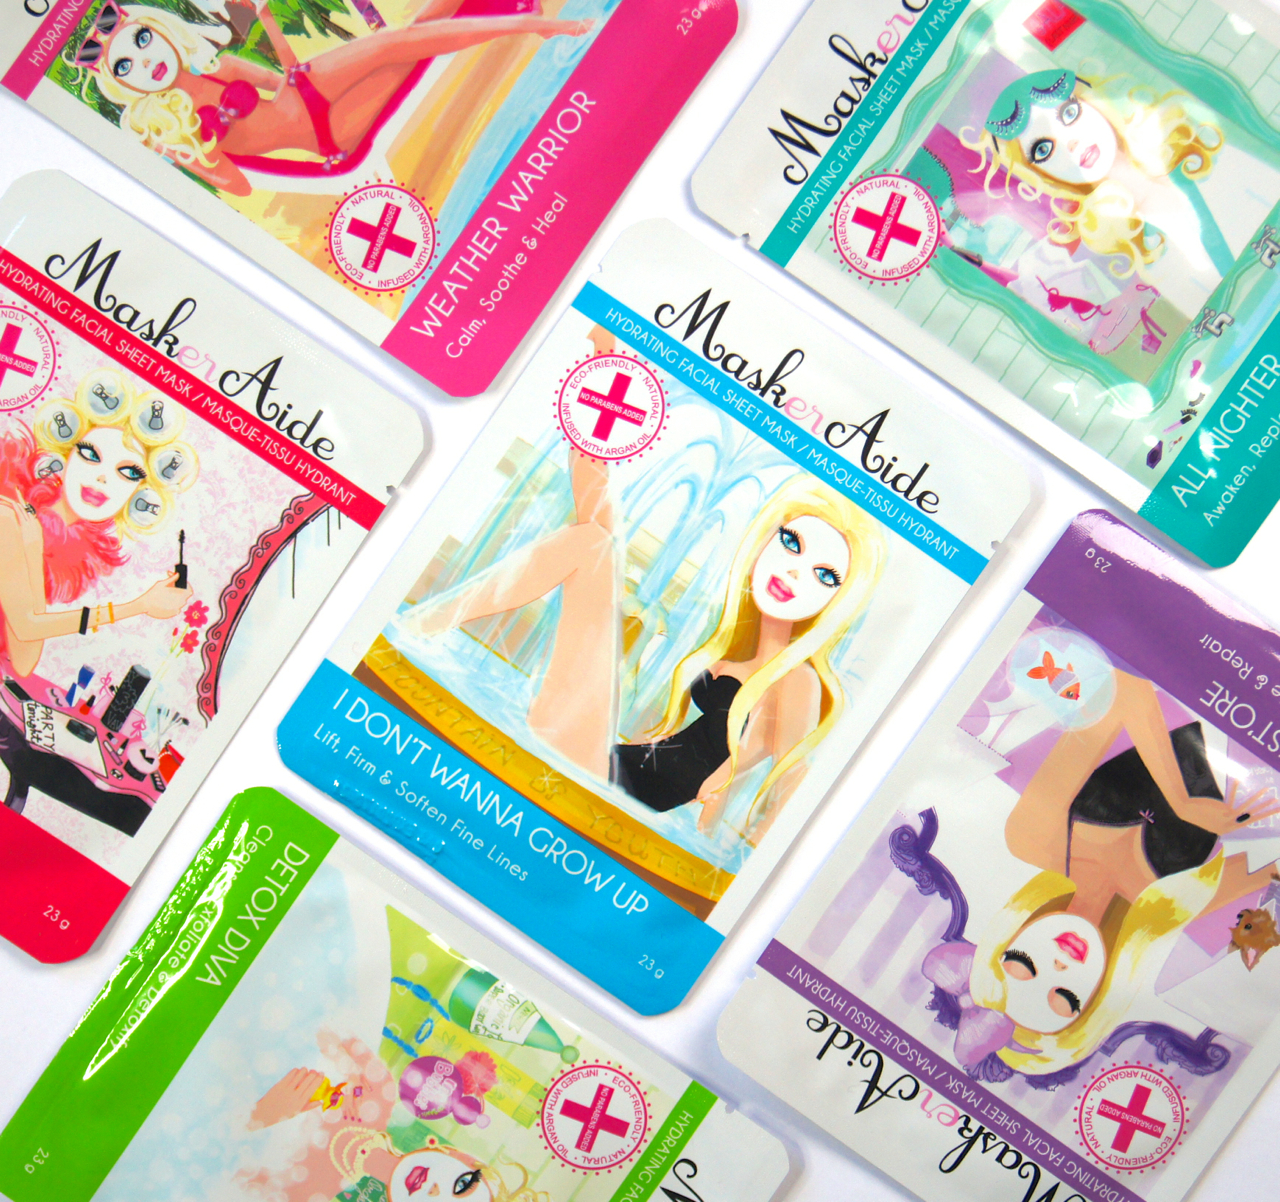 MaskerAide sheet masks review results a very radiant gift set